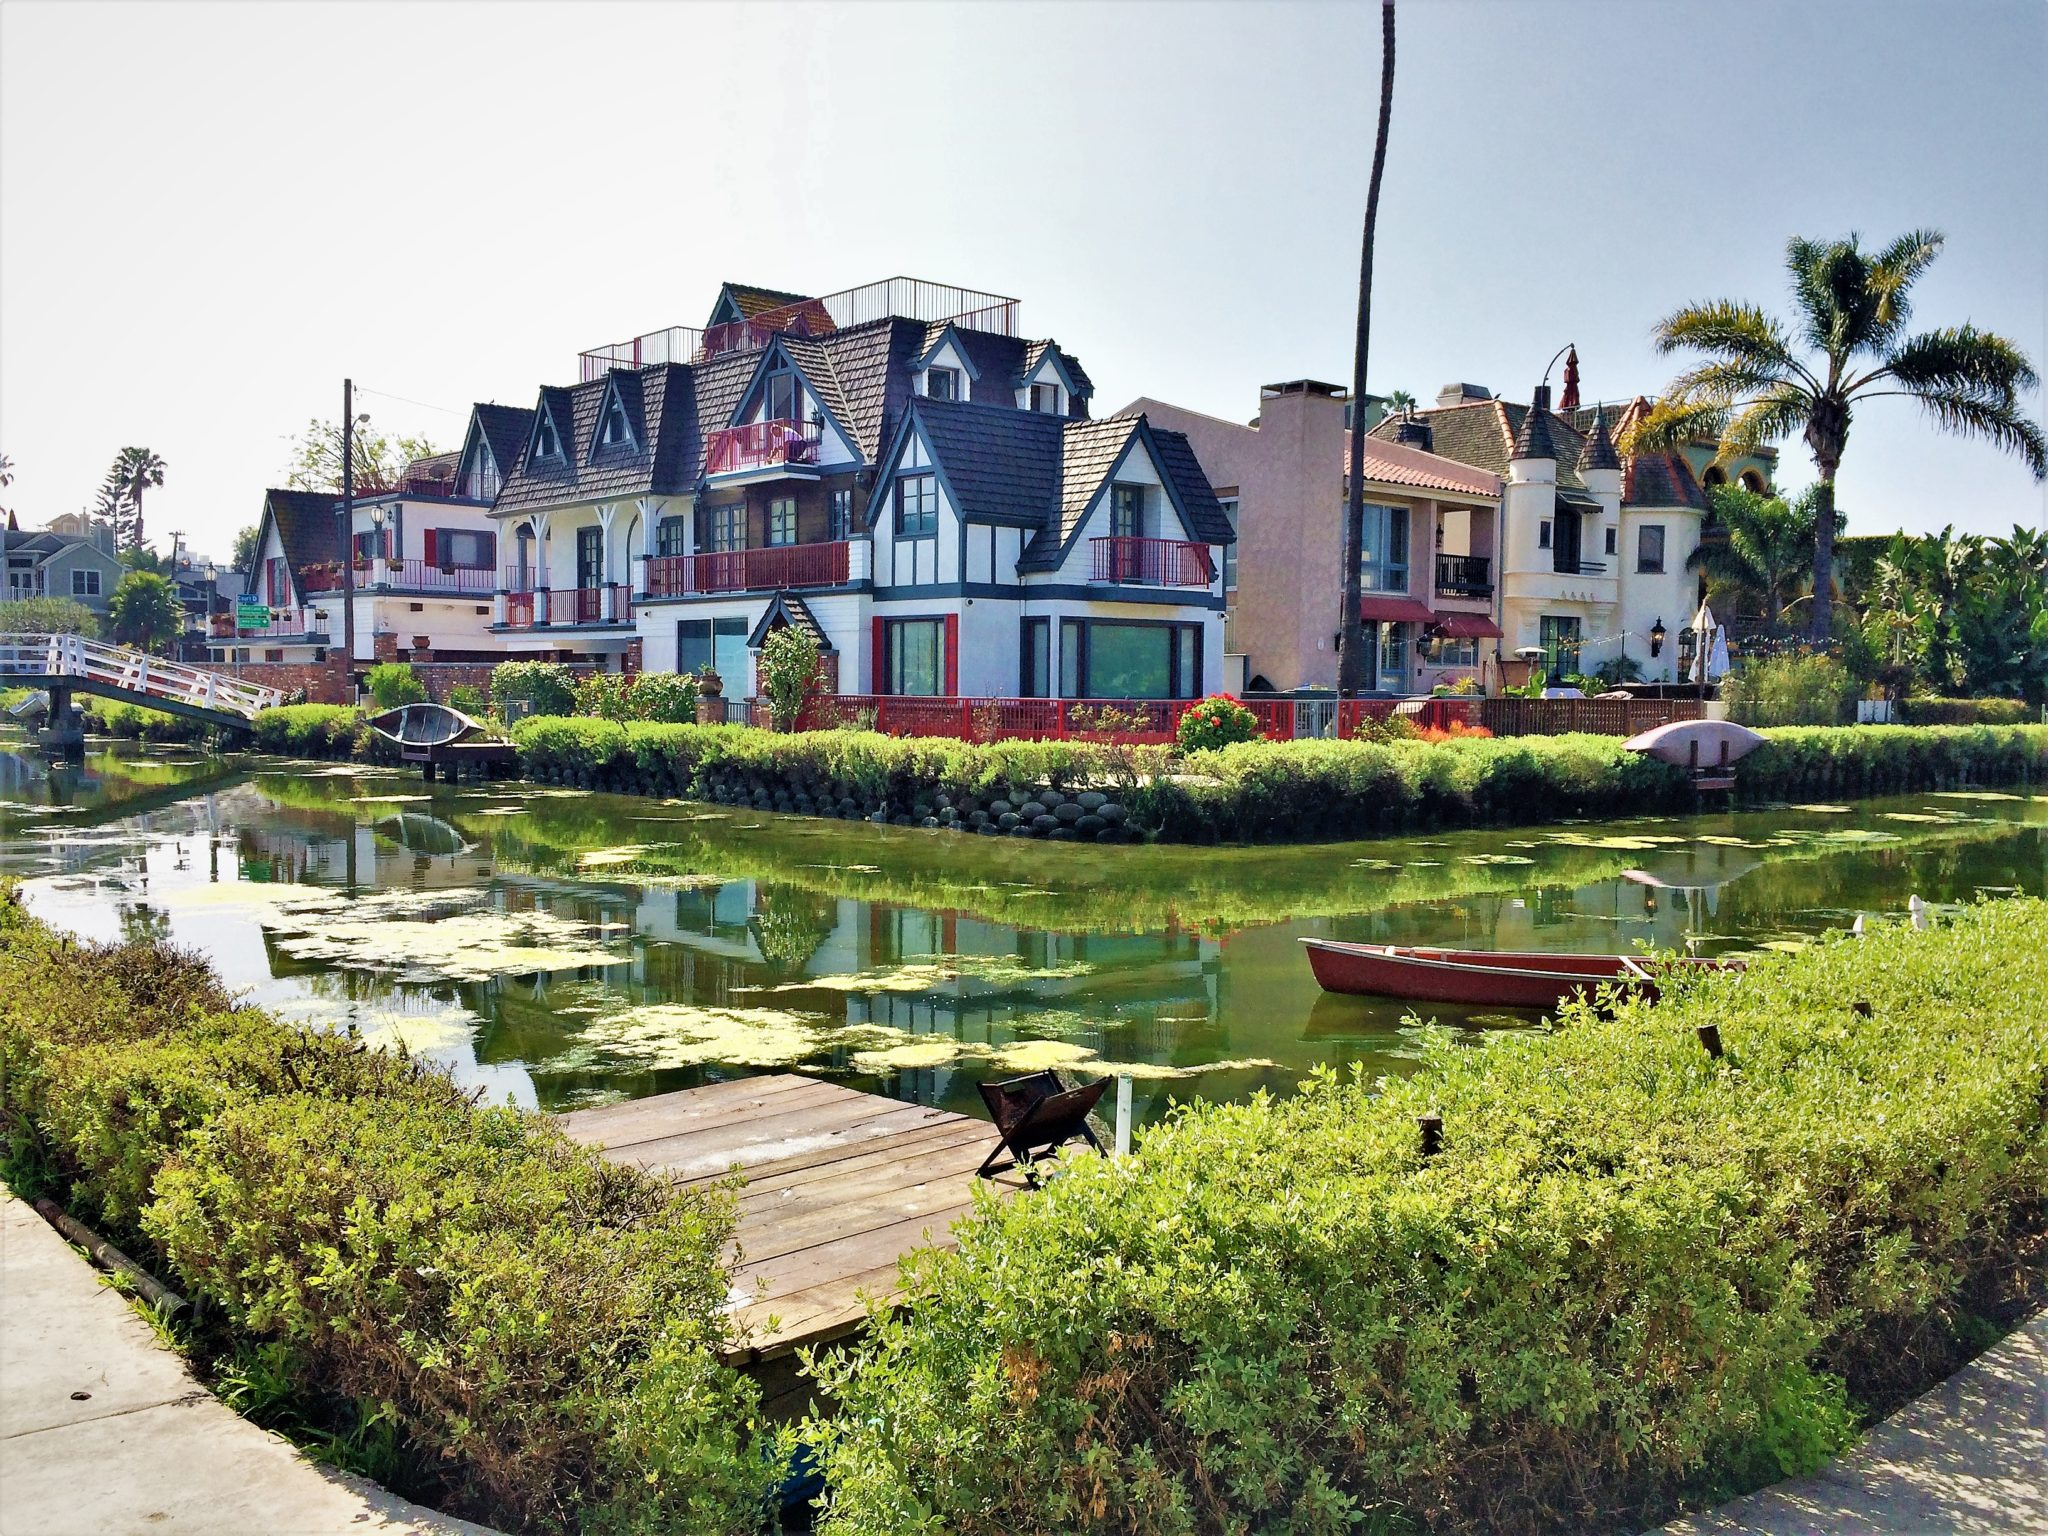 Venice canals fancy housing, free things to do in los angeles